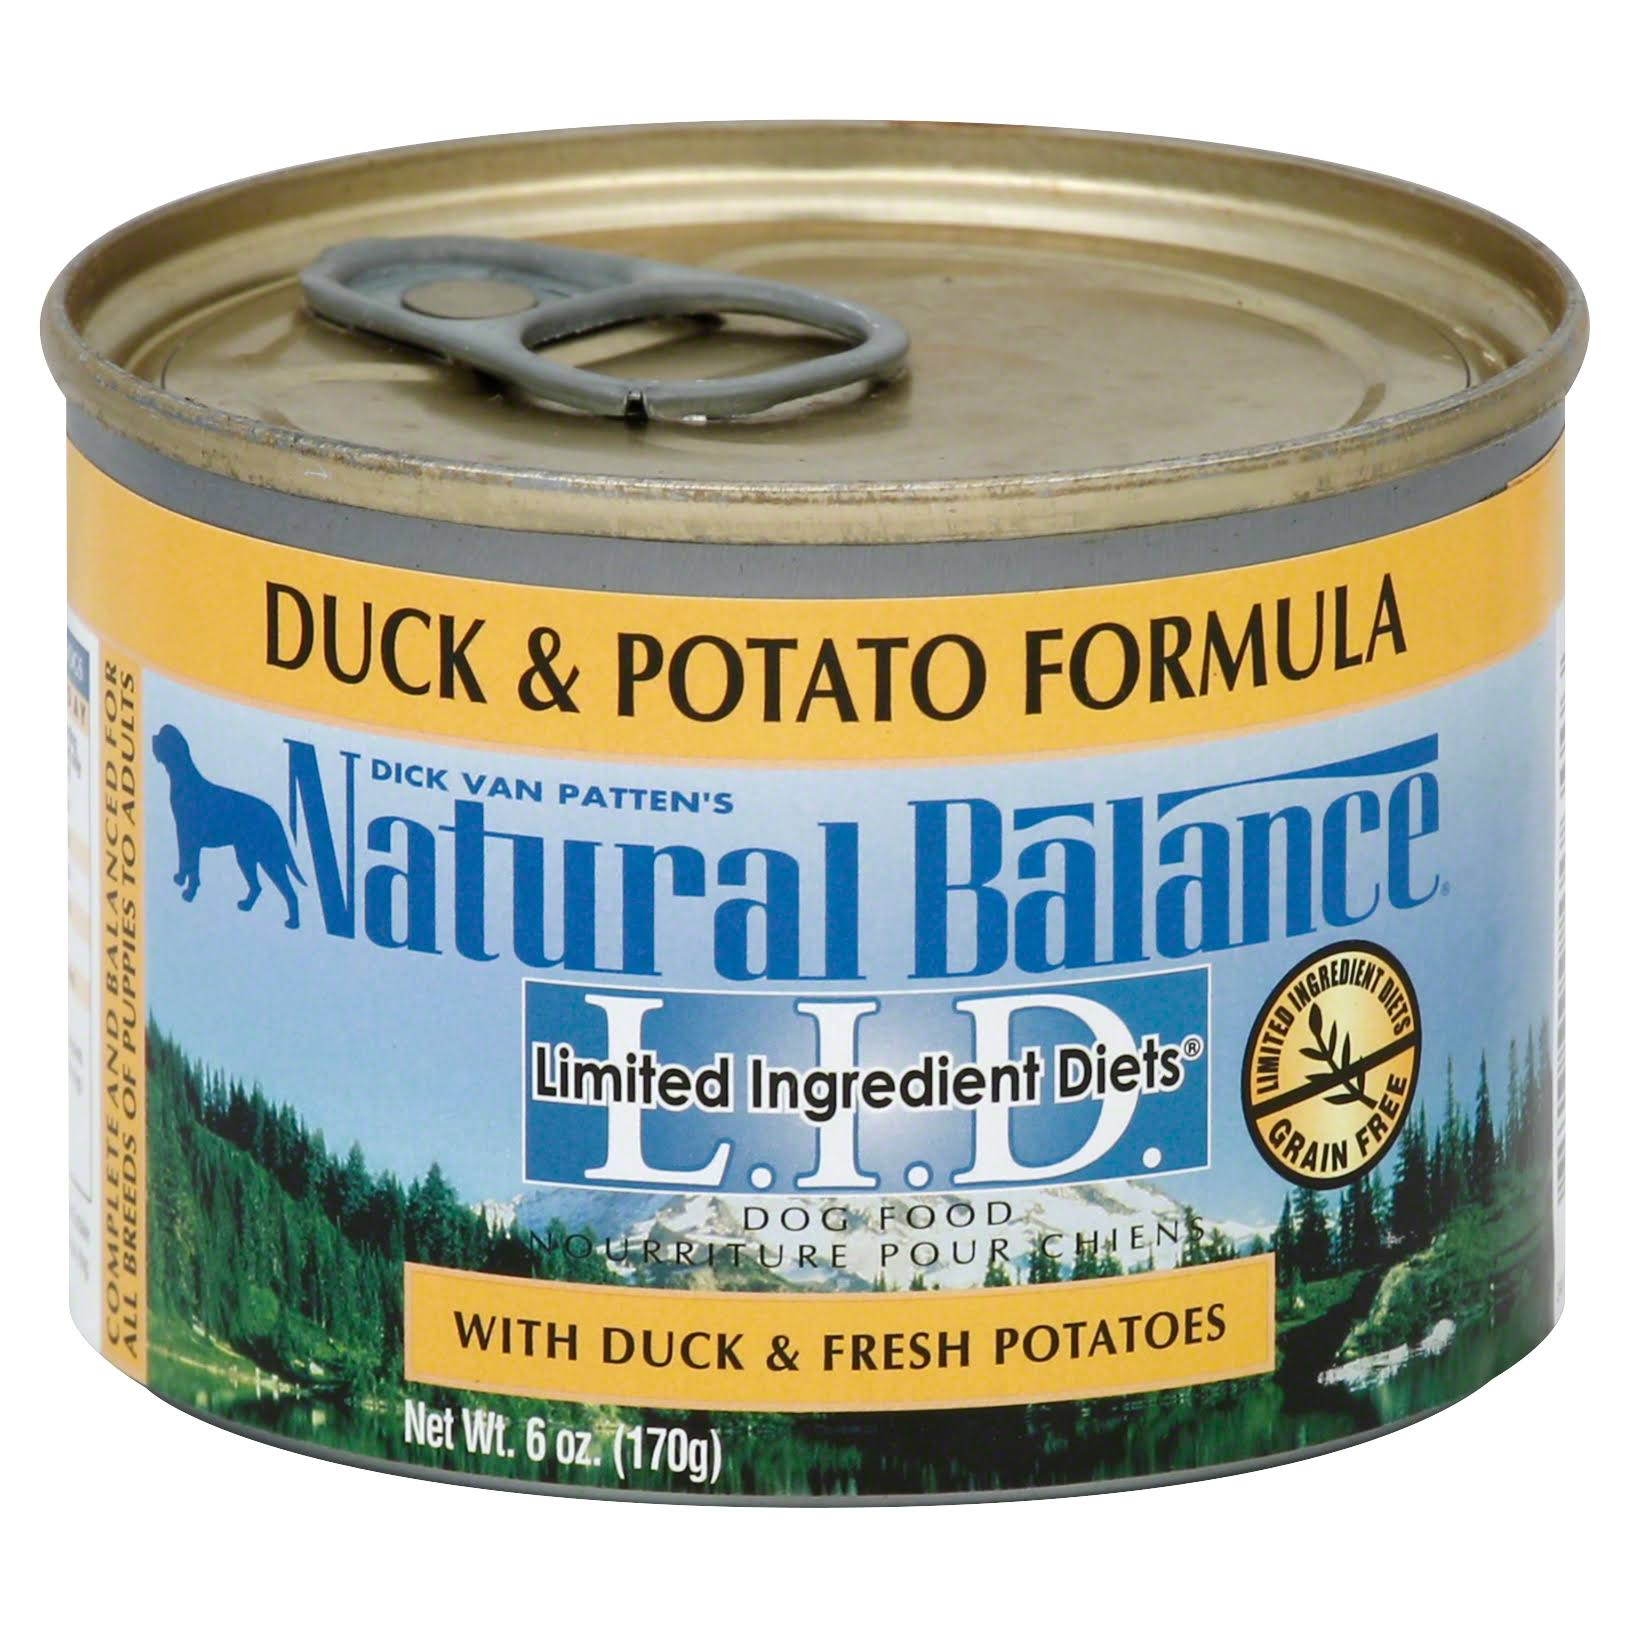 Natural Balance Pet Food L.I.D. Canned Dog Food - Duck and Potato